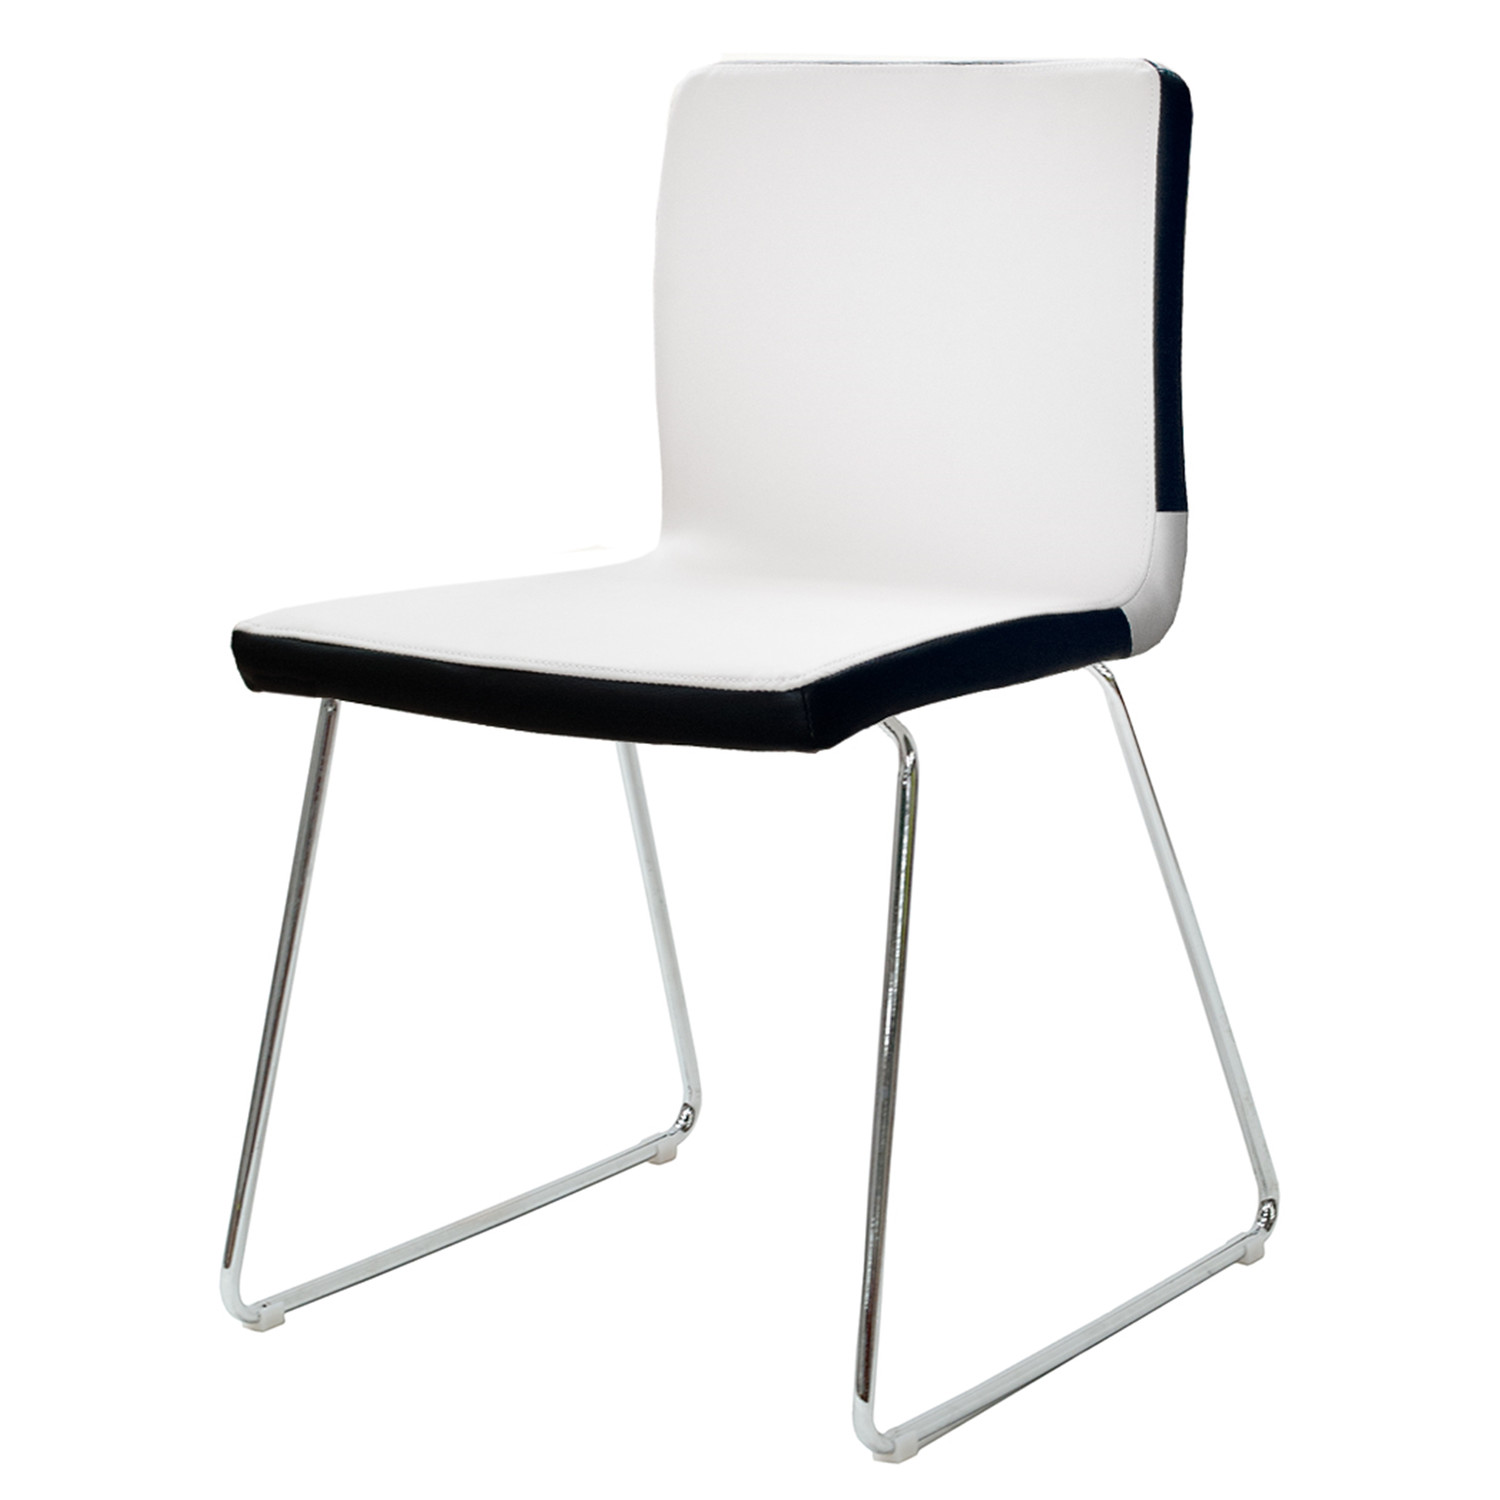 https://www.firstfurniture.co.uk/pub/media/catalog/product/w/i/wilkinson-furniture-optic-dining-chair-opch_1.jpg